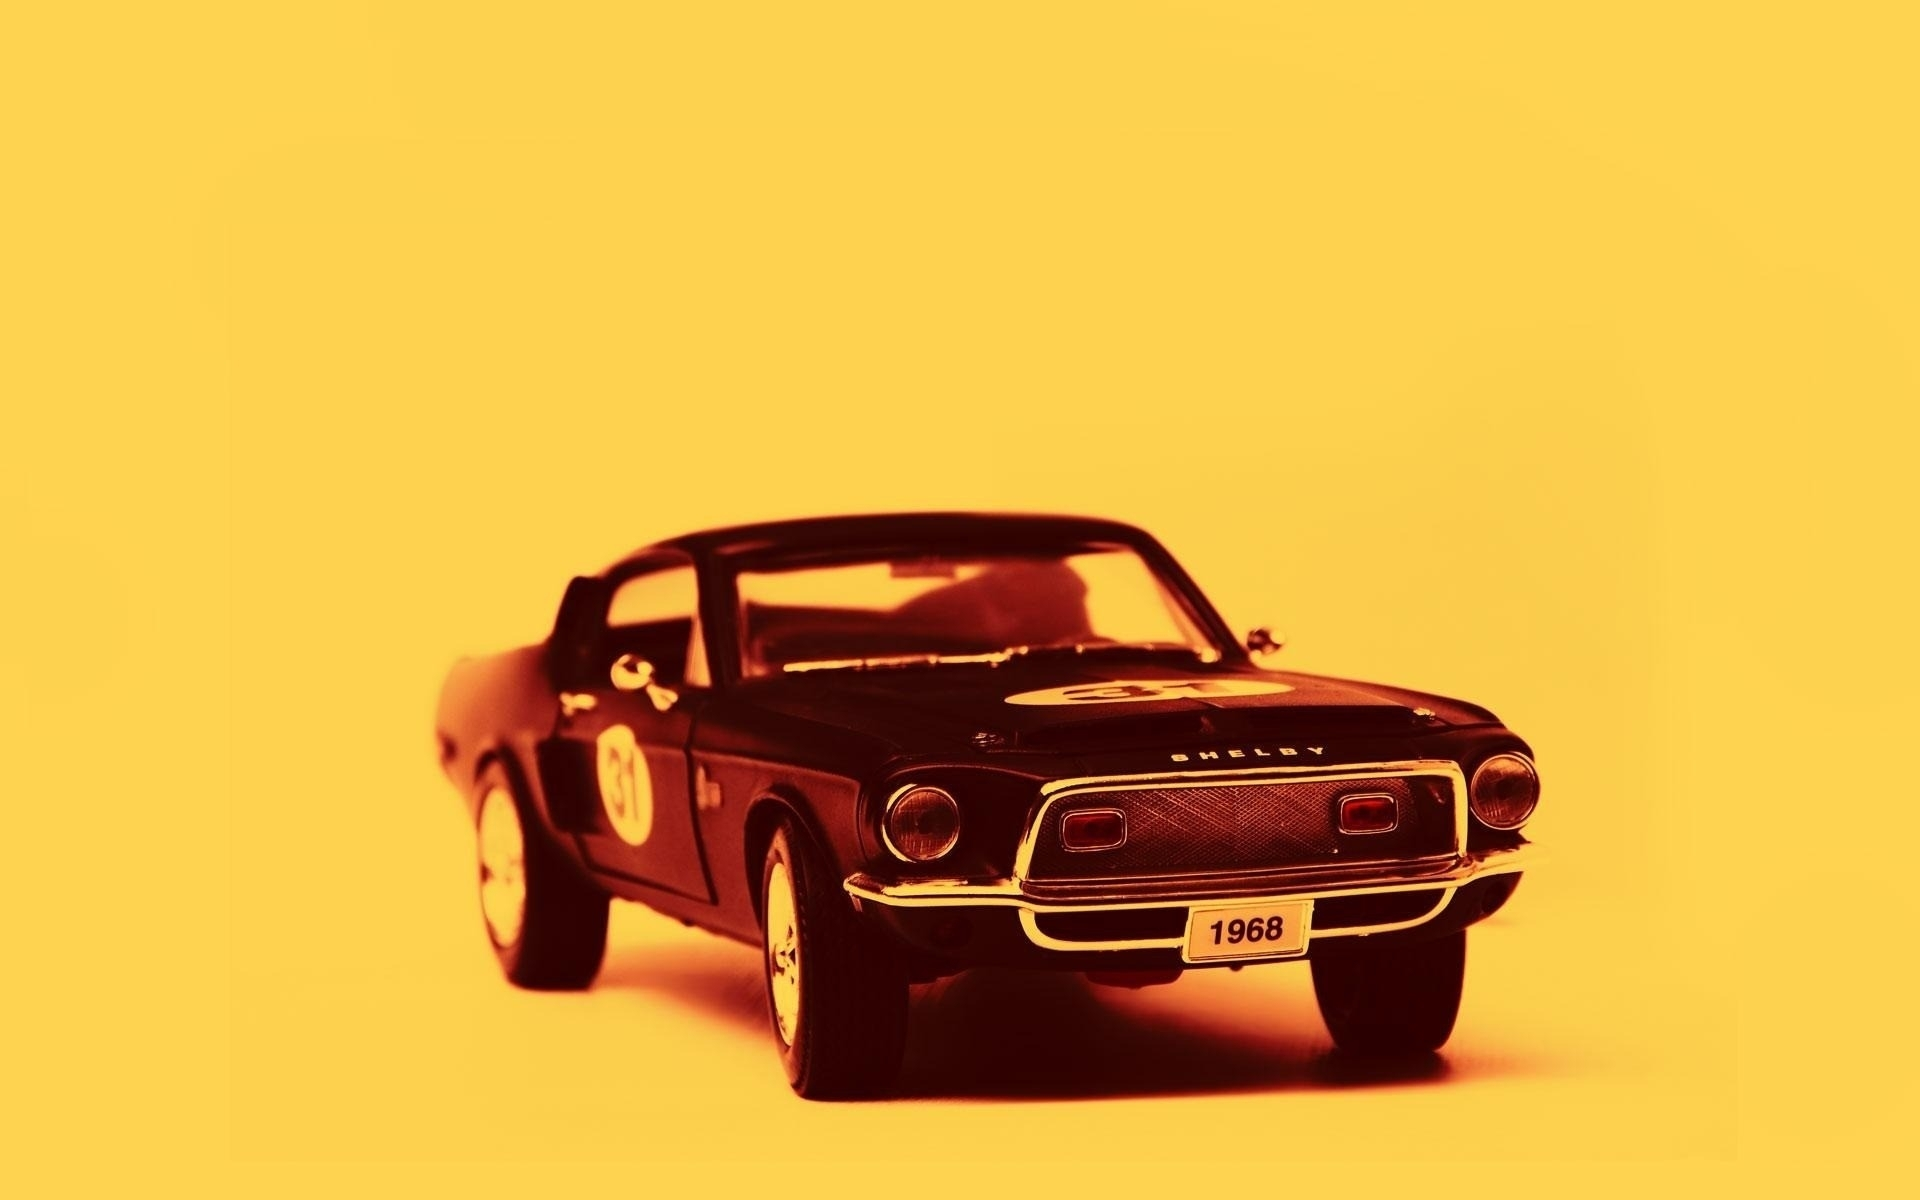 1968 ford mustang computer - photo #13